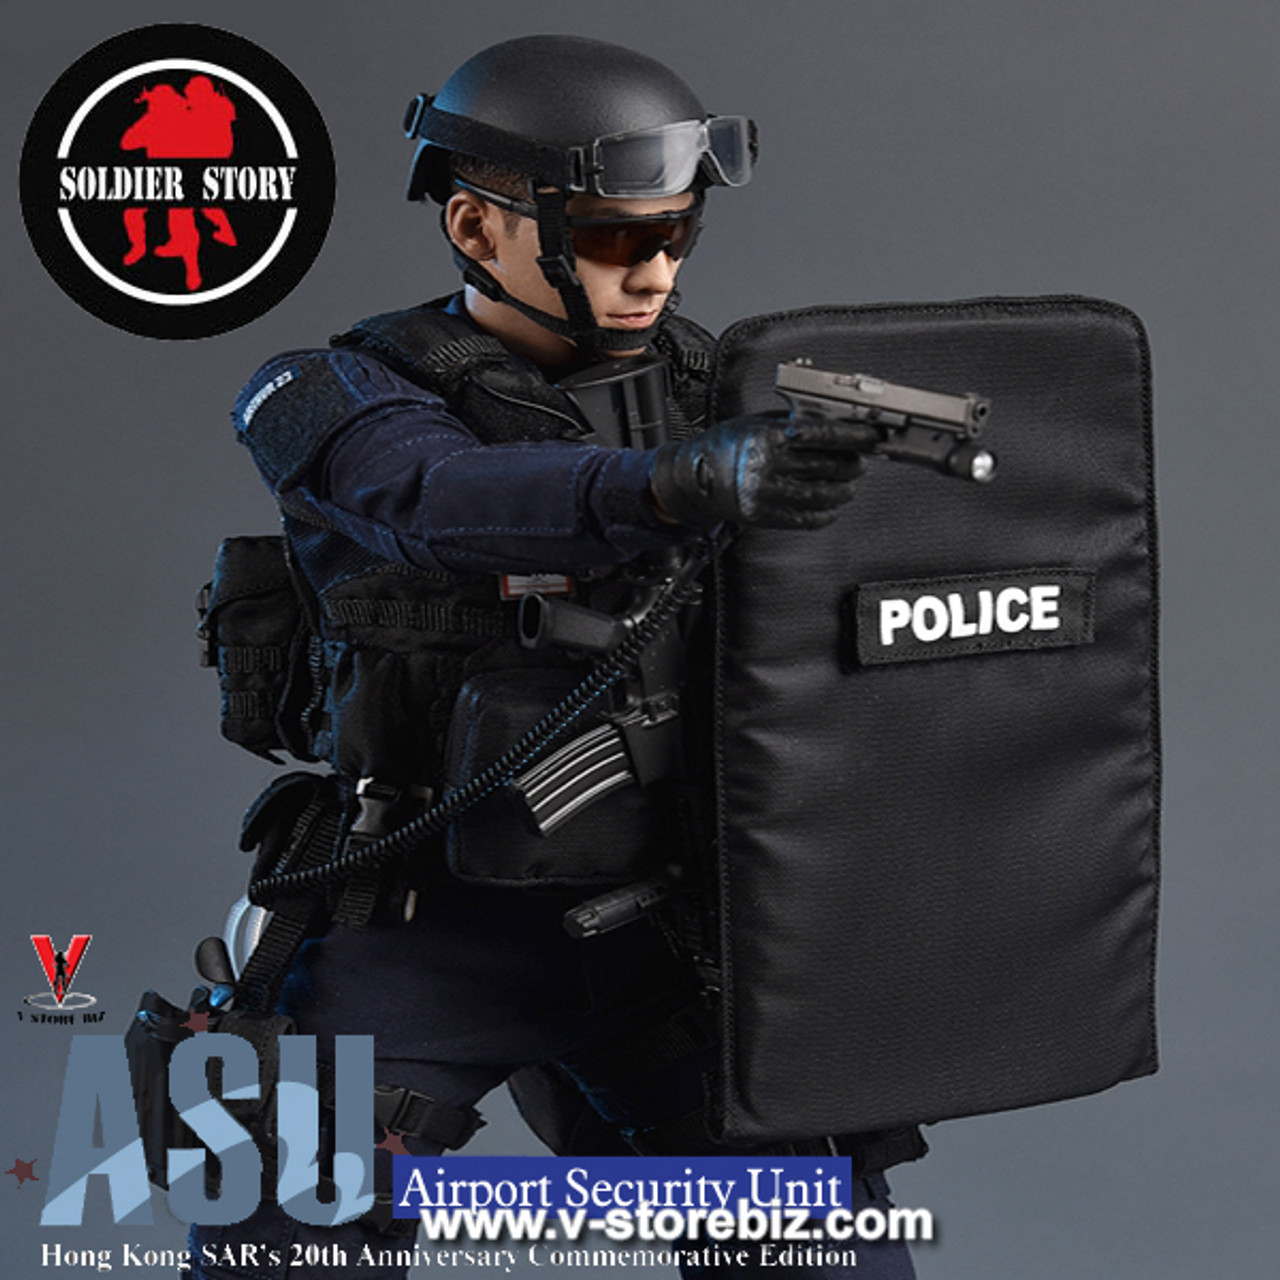 1//6 Scale Soldier Story SS103 HK Airport Security Unit ASU gloved hands x 3